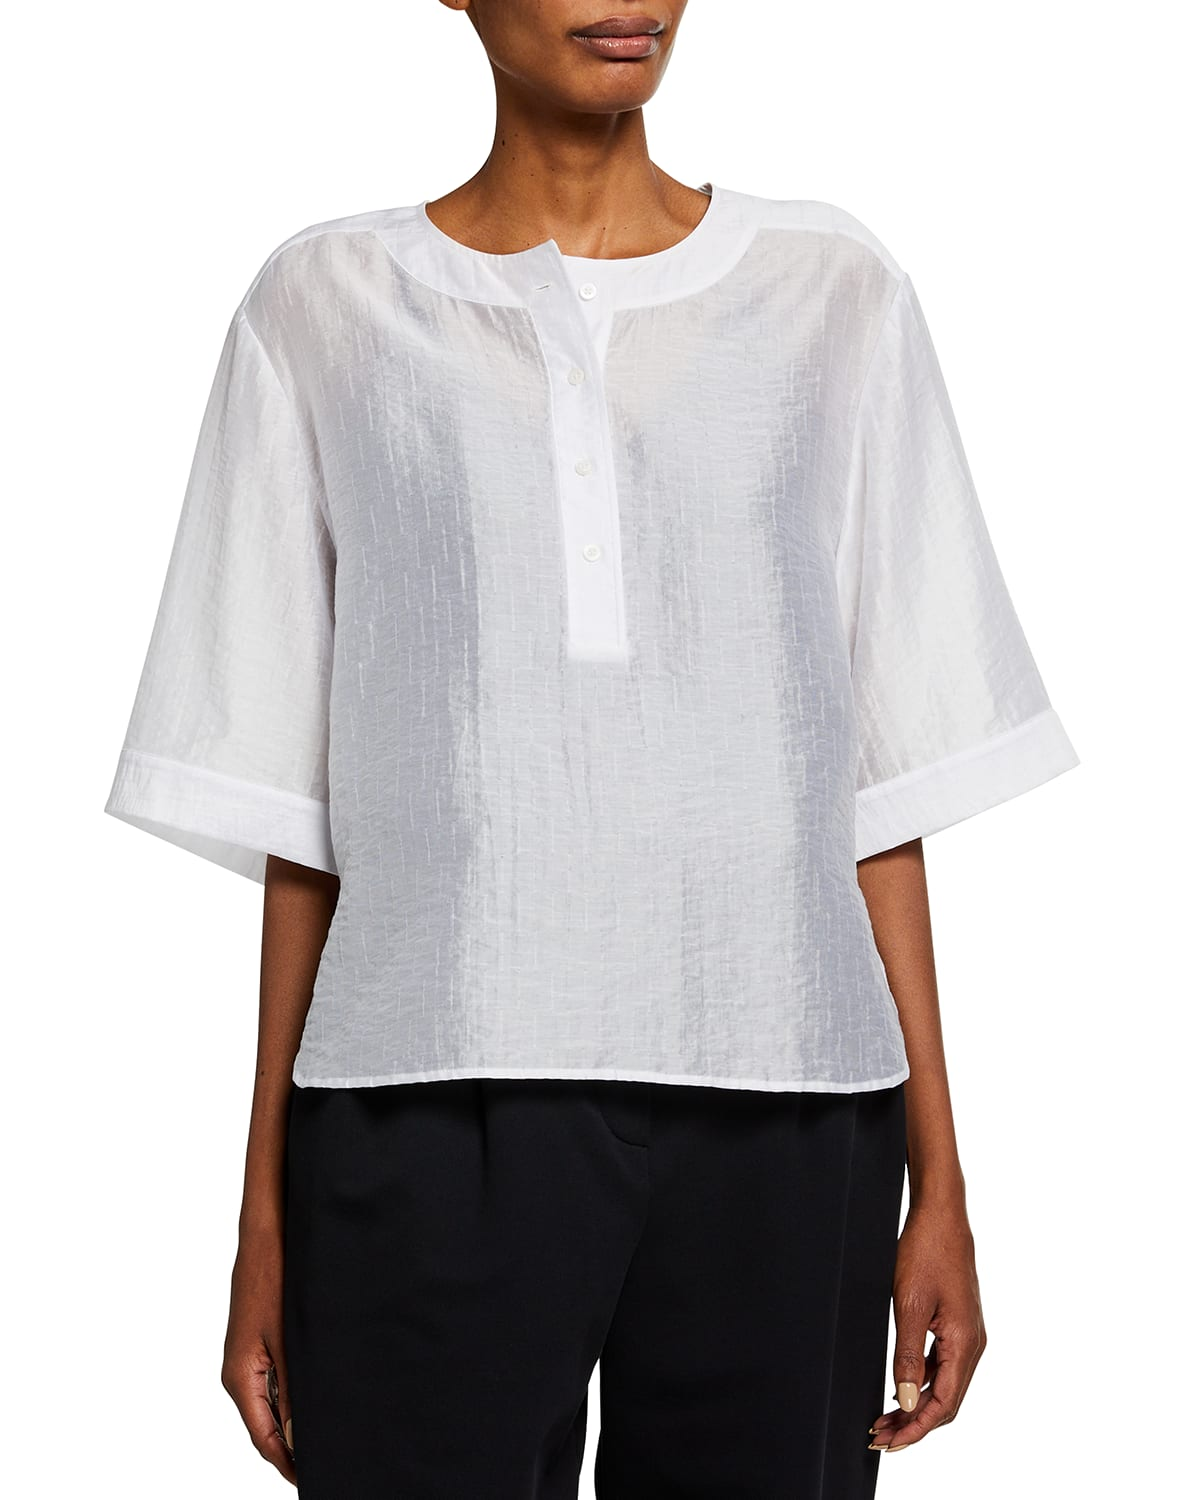 Henley Top with Oversized Sleeves